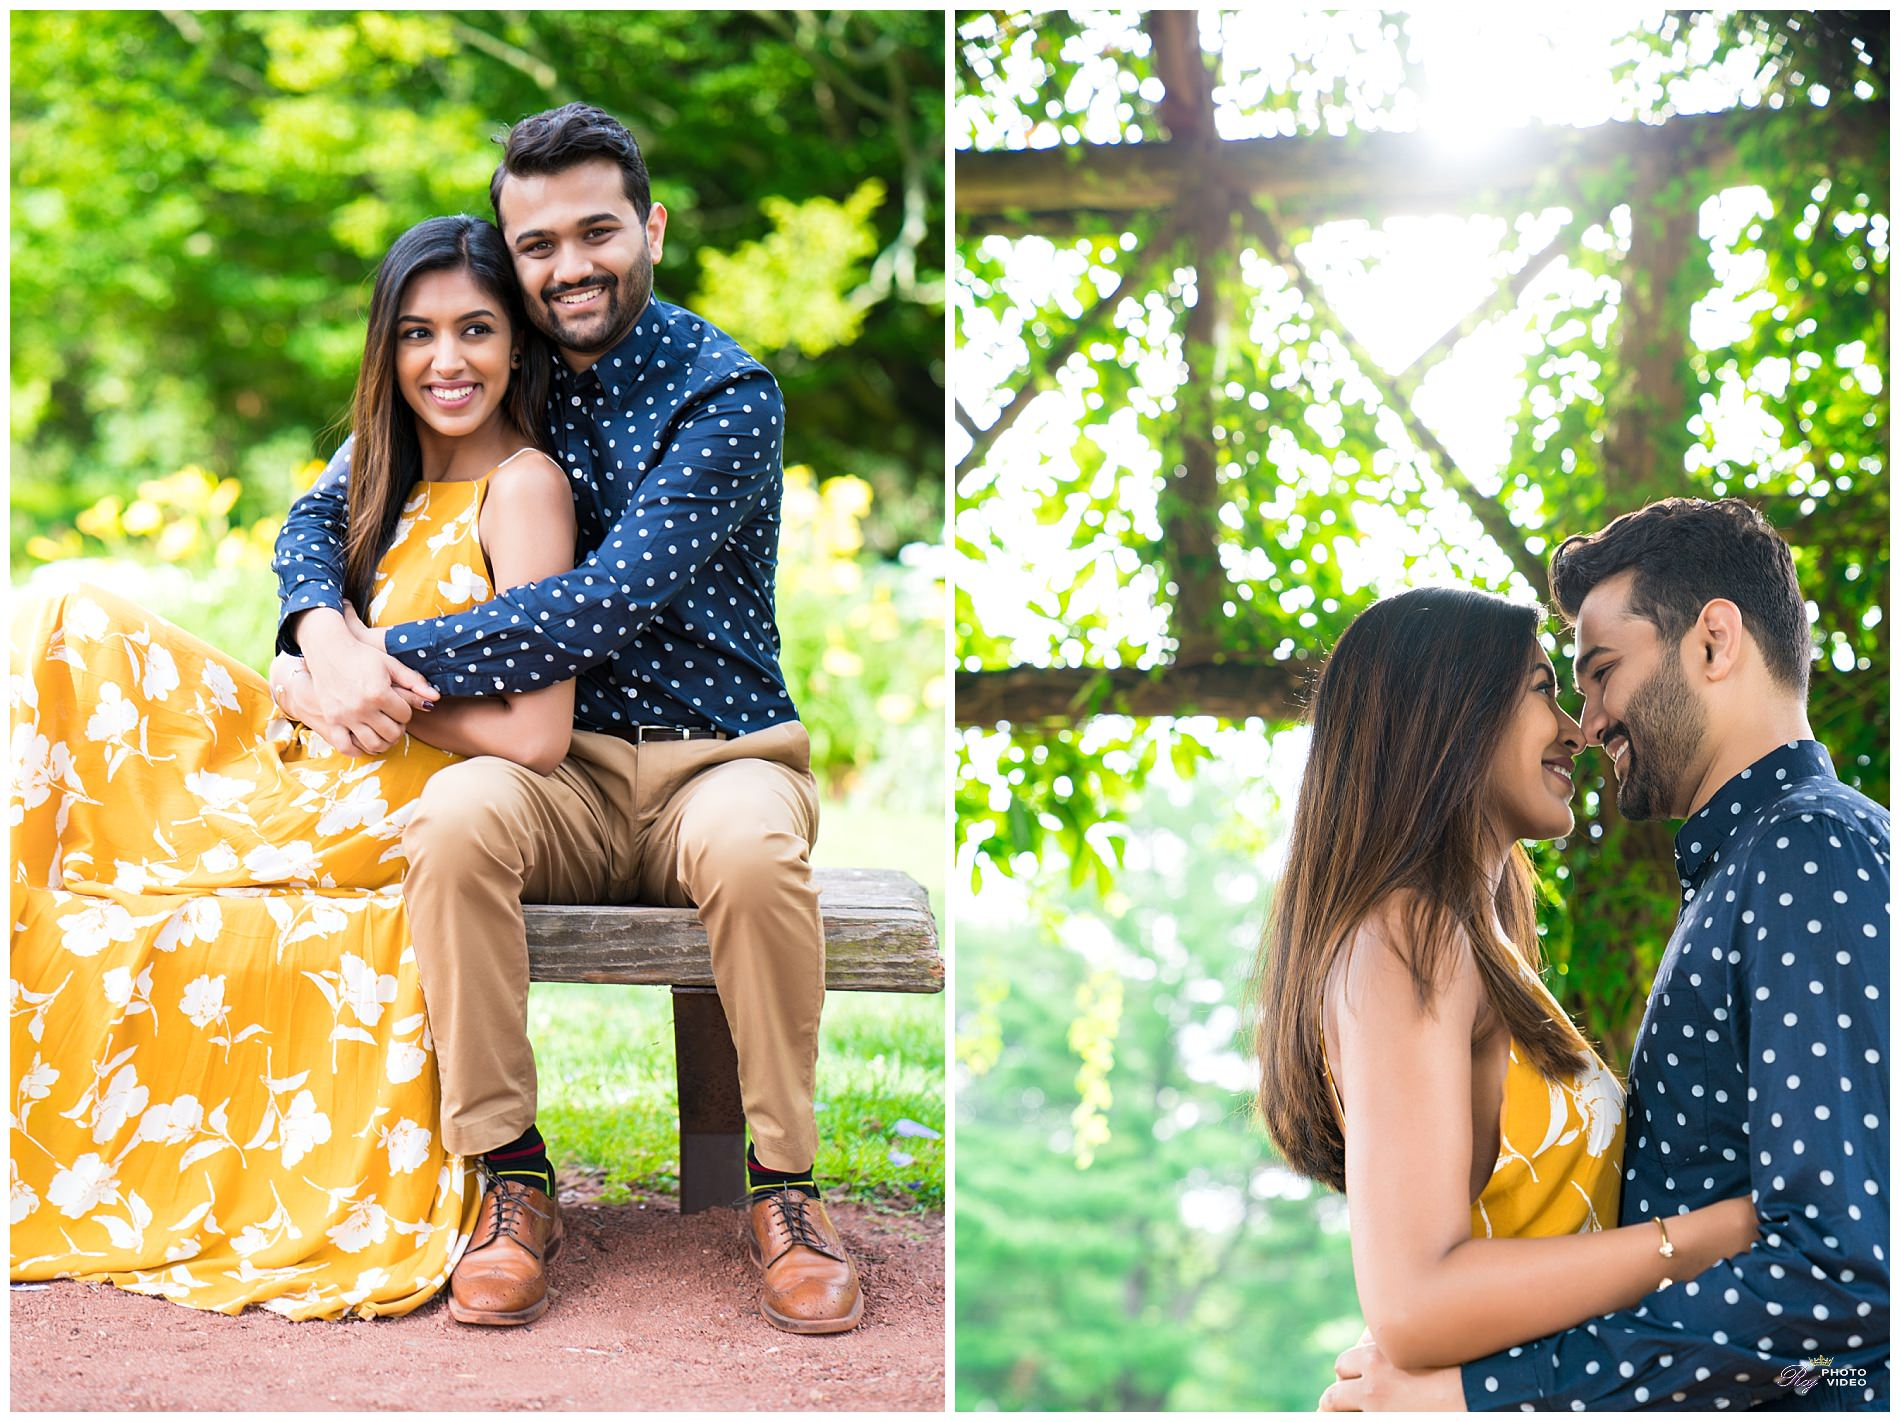 Elizabeth-Park-Rose-Garden-Hartford-CT-Engagement-Shoot-Pratiti-Suraj-18.jpg